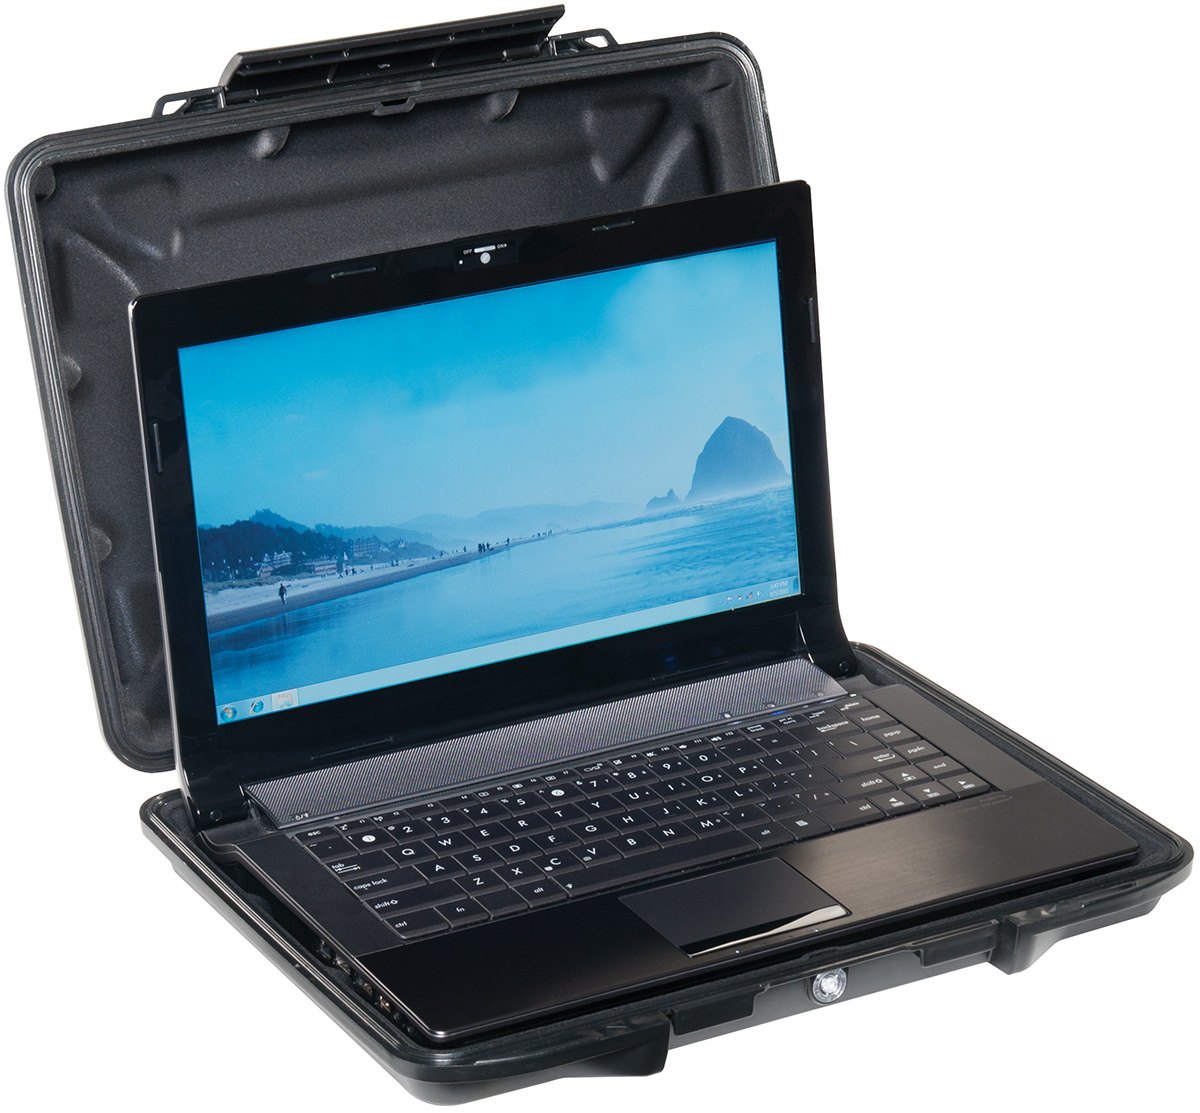 pelican peli products 1085CC rugged crushproof laptop hardcase